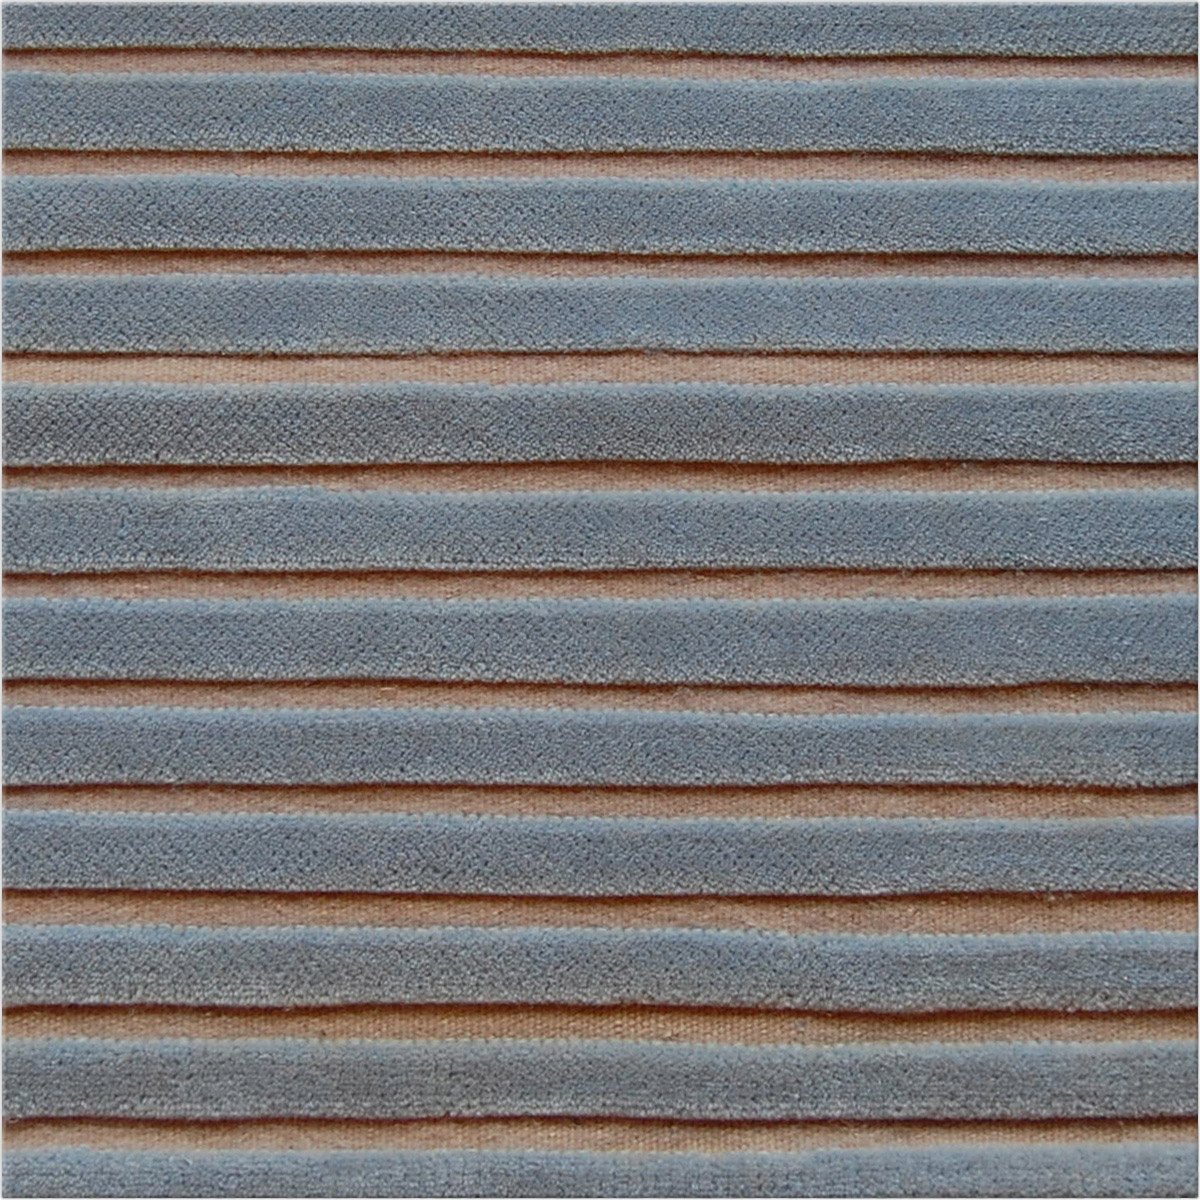 DLB Blue Stripes N10129S